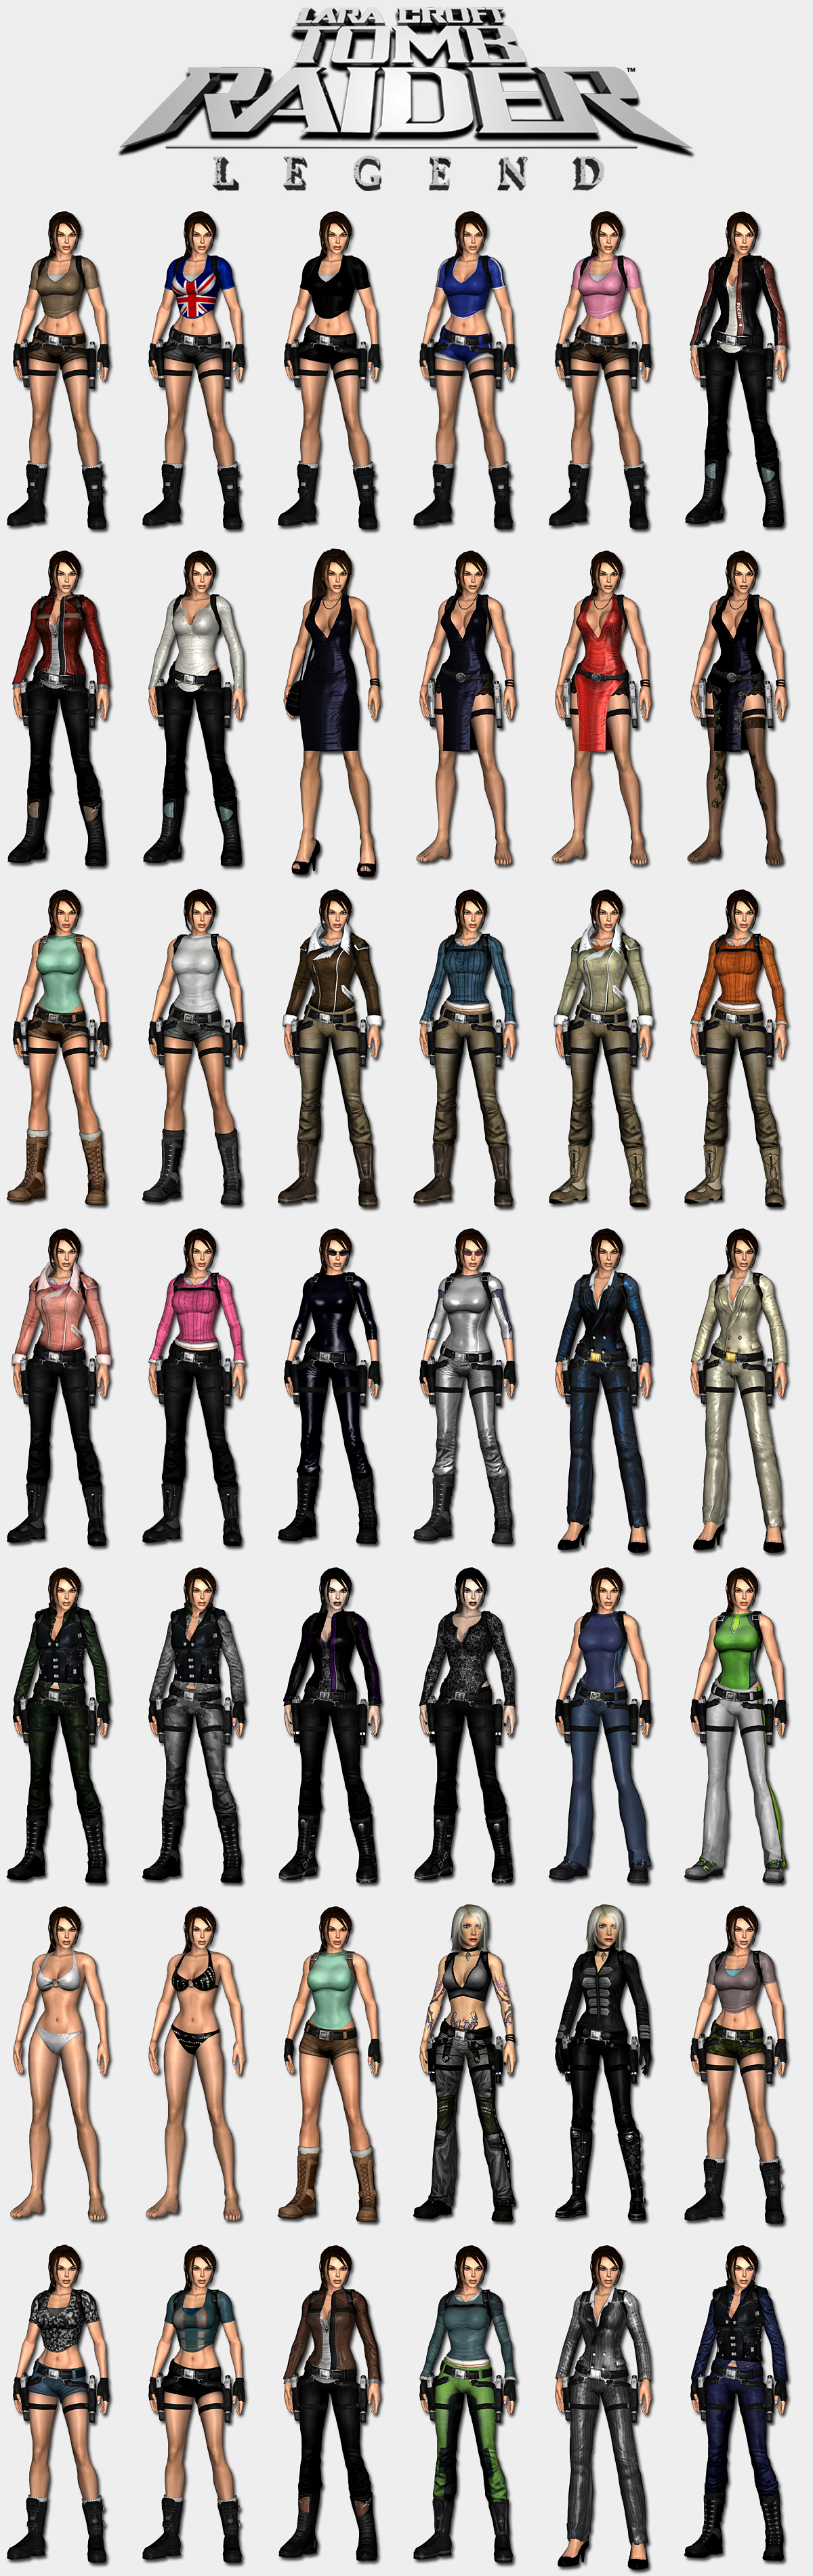 Tomb raider legend outfits xxx erotic movies